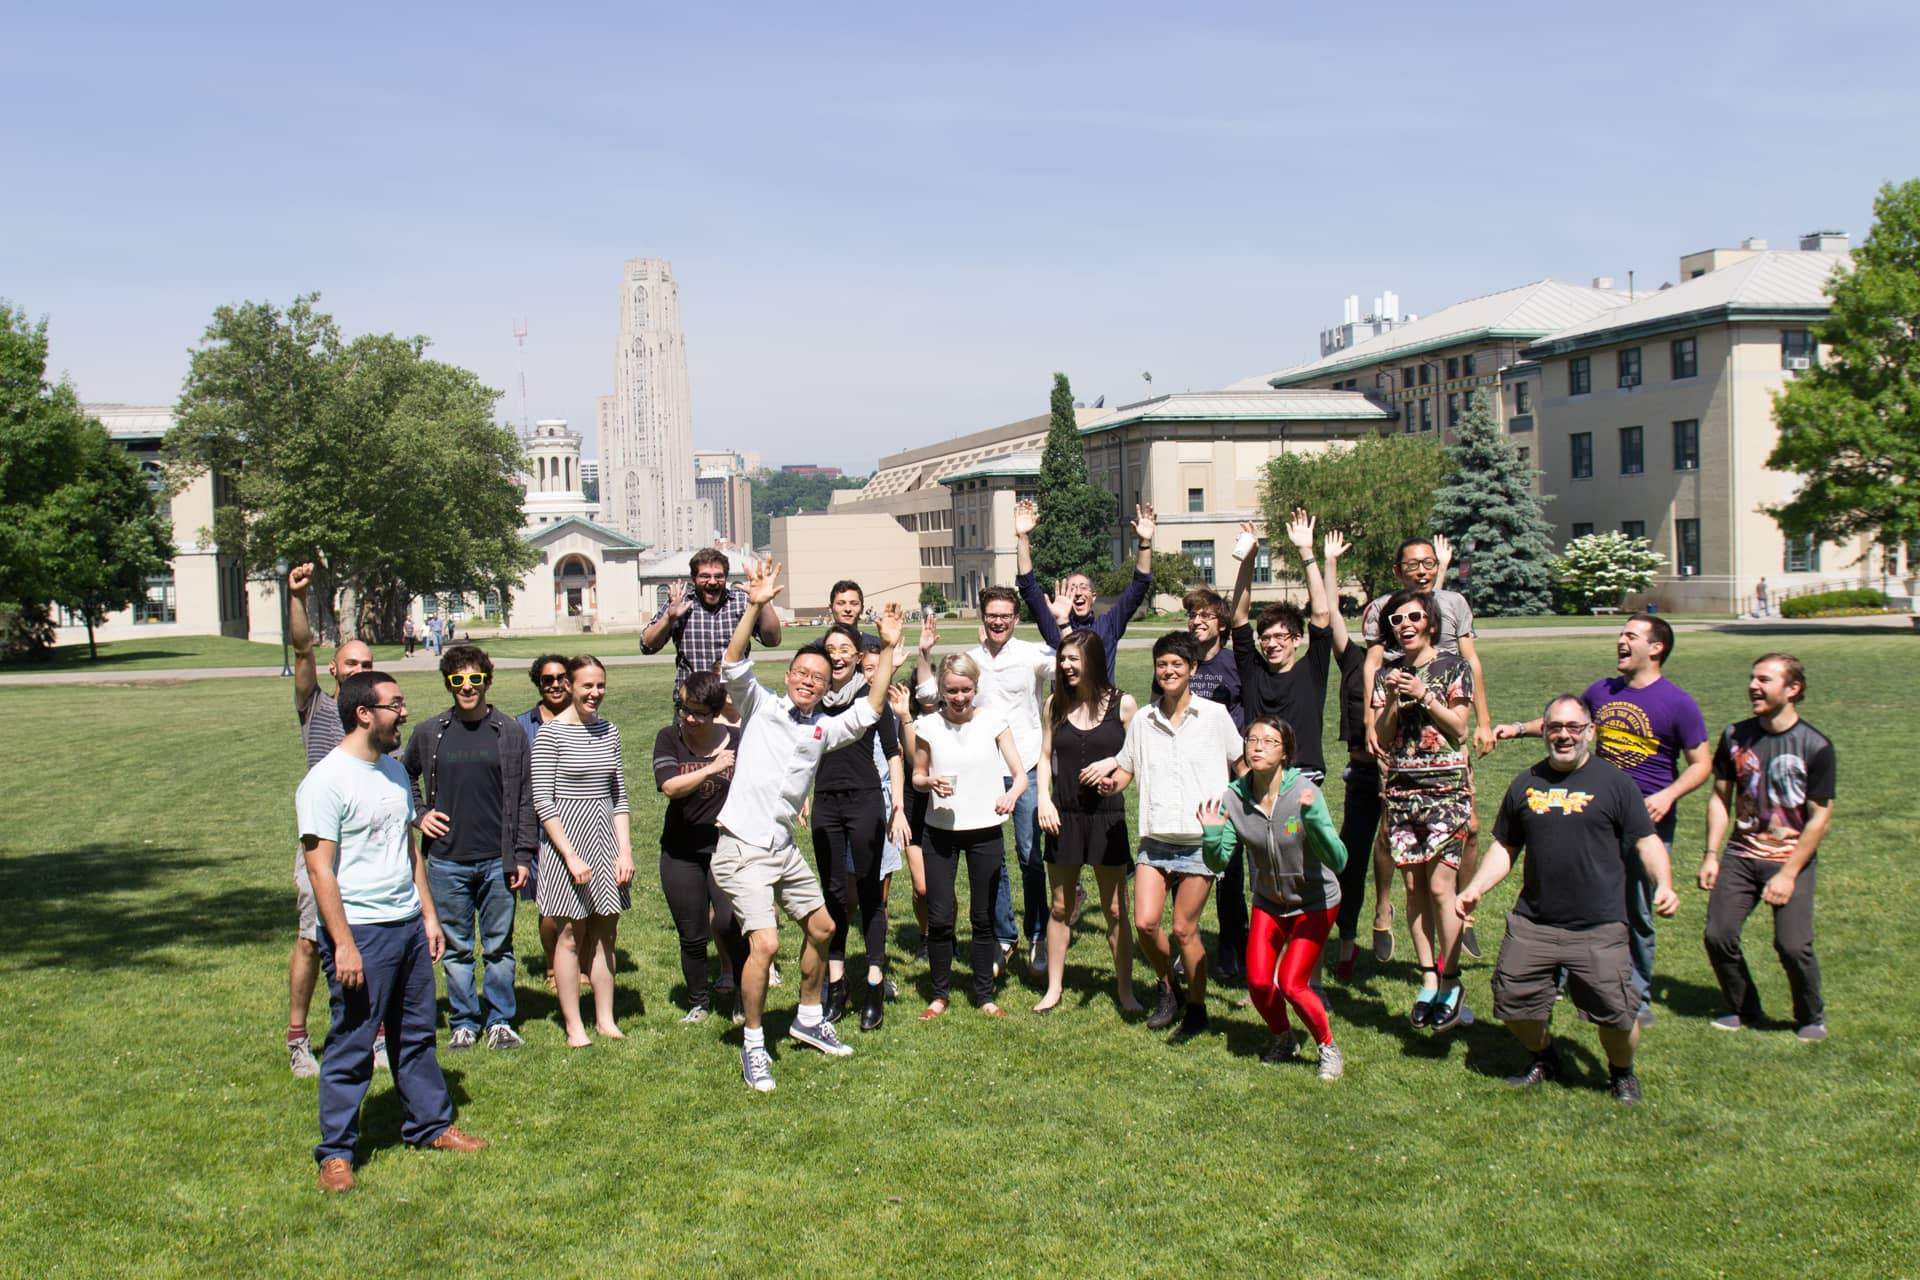 Participants jump, smile and throw their hands in the air on a green lawn""